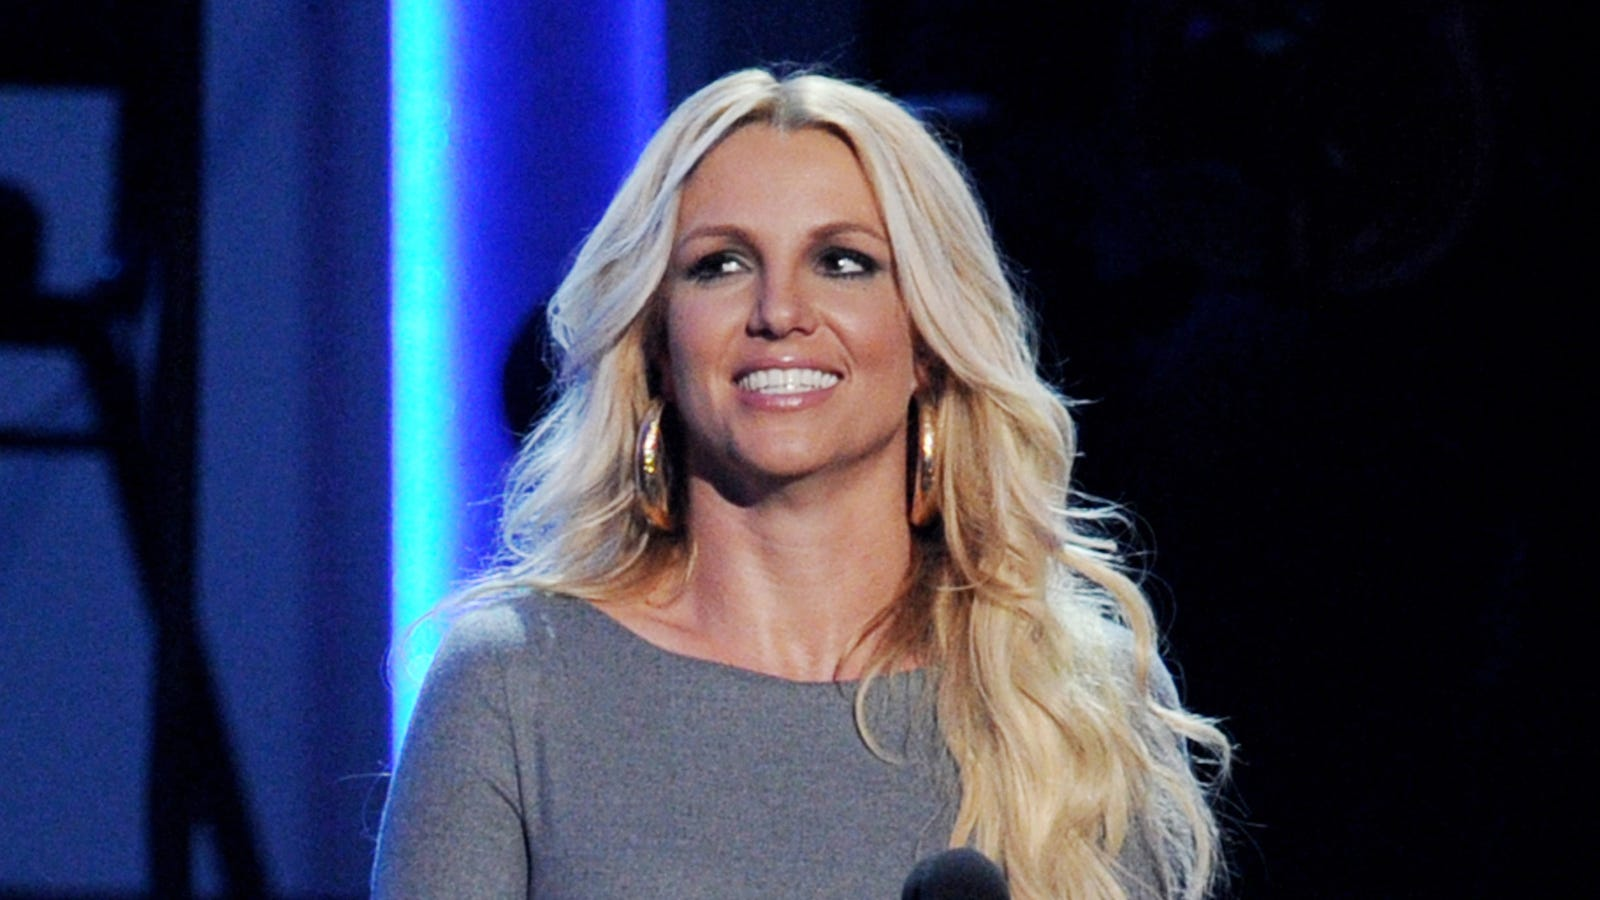 Britney Spears Had a Major Meth Problem, Alleges Former